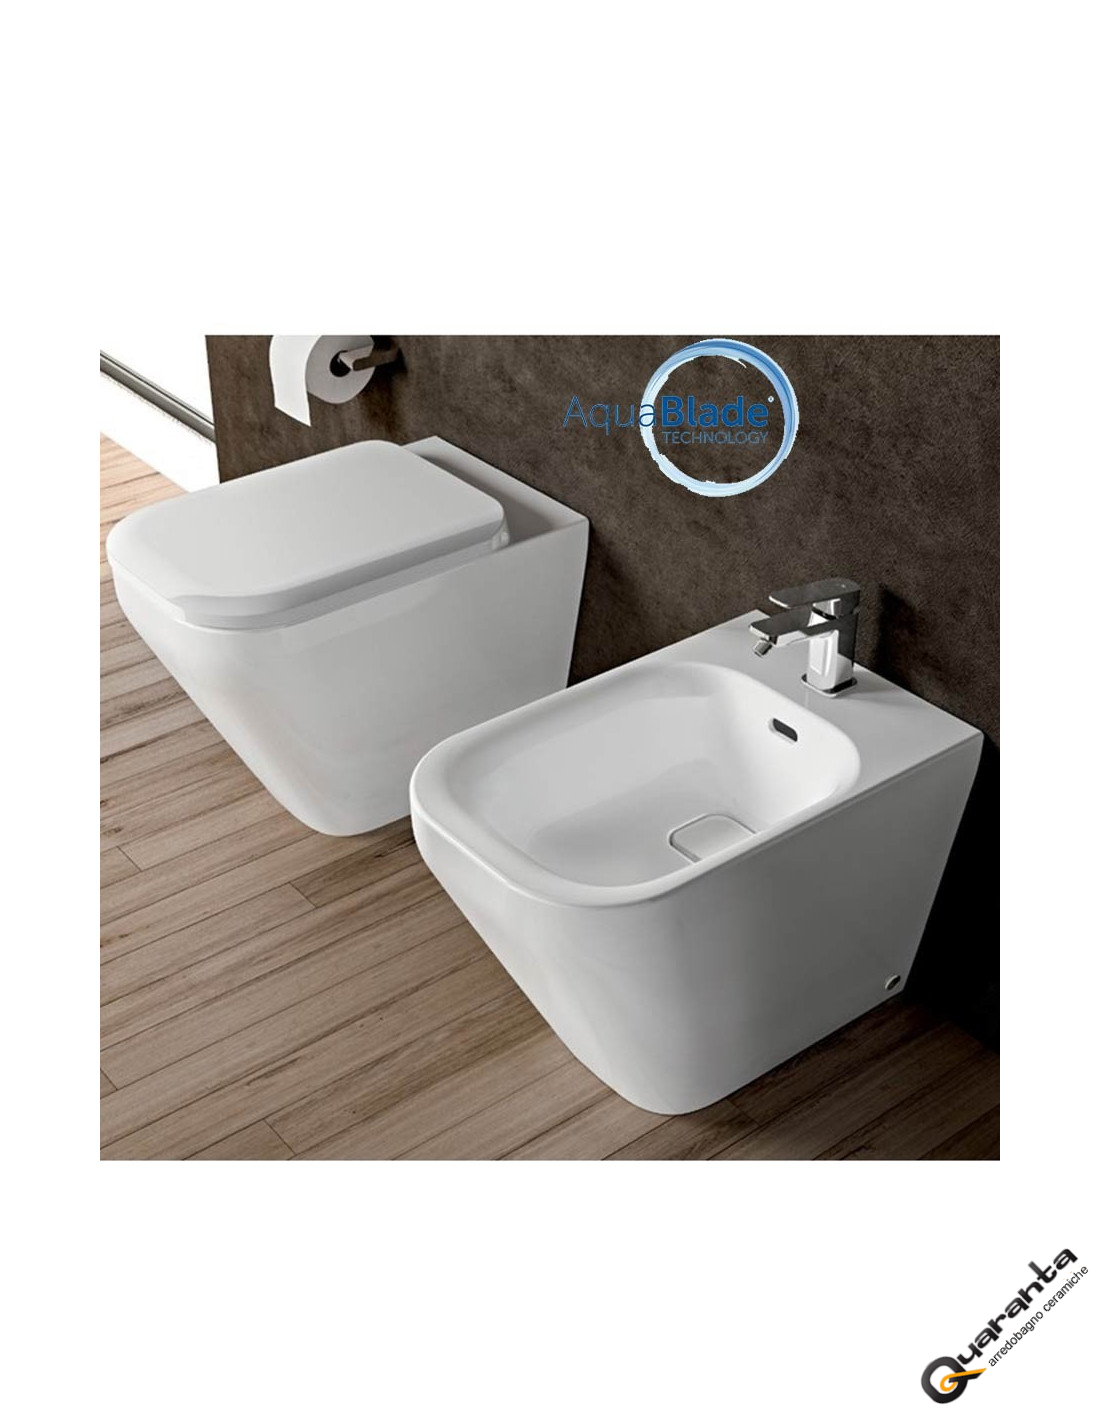 sanitari quaranta ceramiche vaso bidet coprivaso aquablade. Black Bedroom Furniture Sets. Home Design Ideas